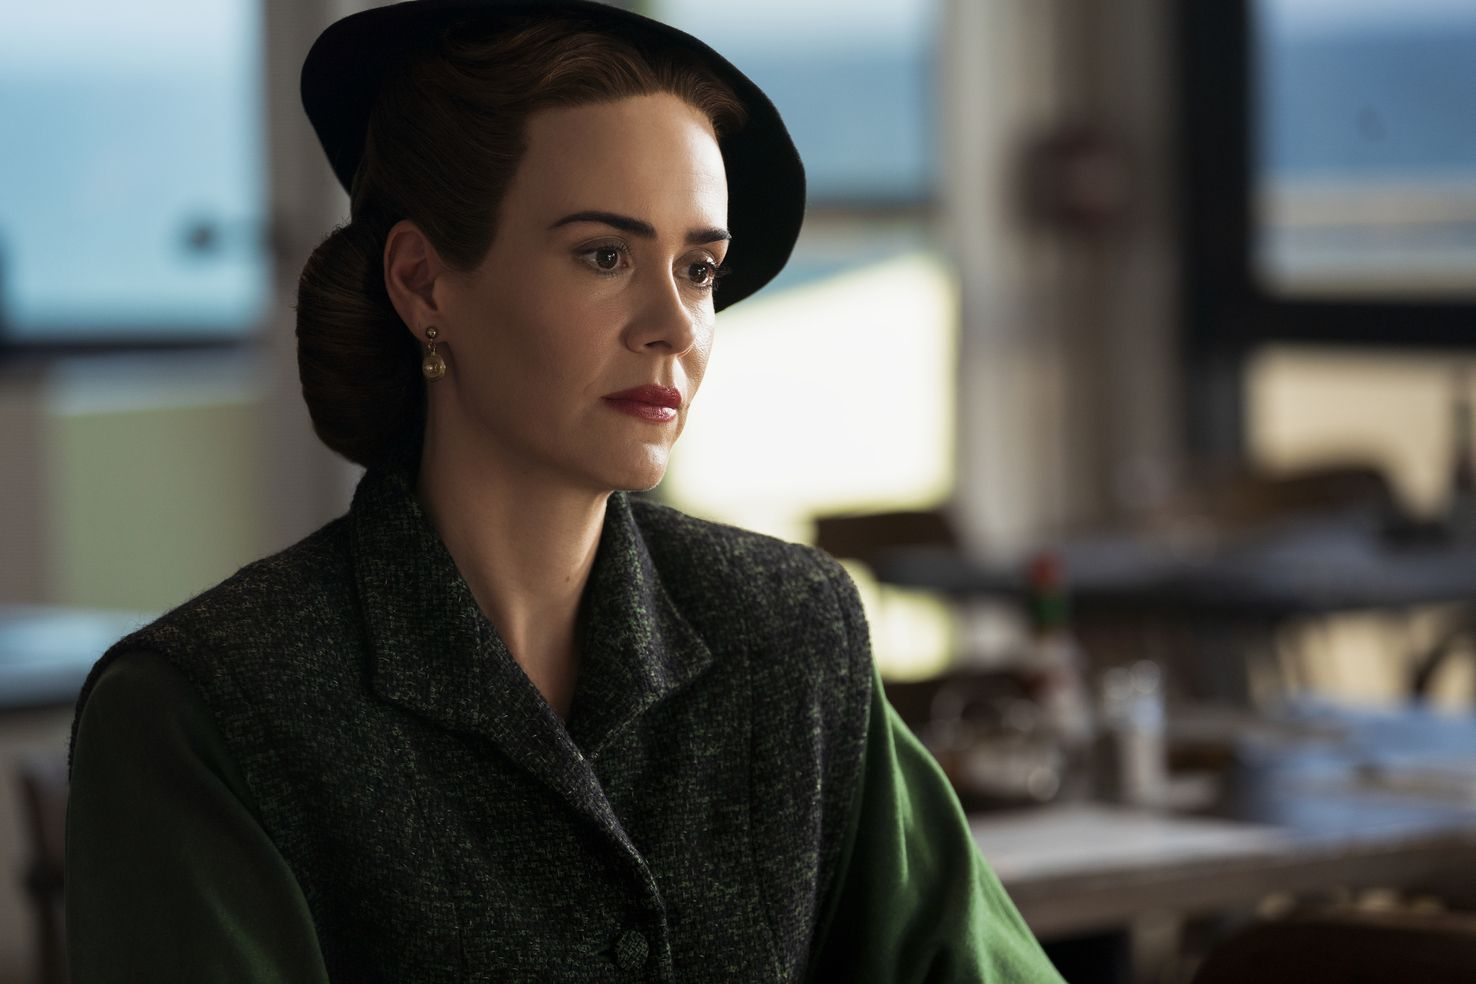 ratched l to r sarah paulson as mildred ratched in episode 106 of ratched cr saeed adyaninetflix © 2020